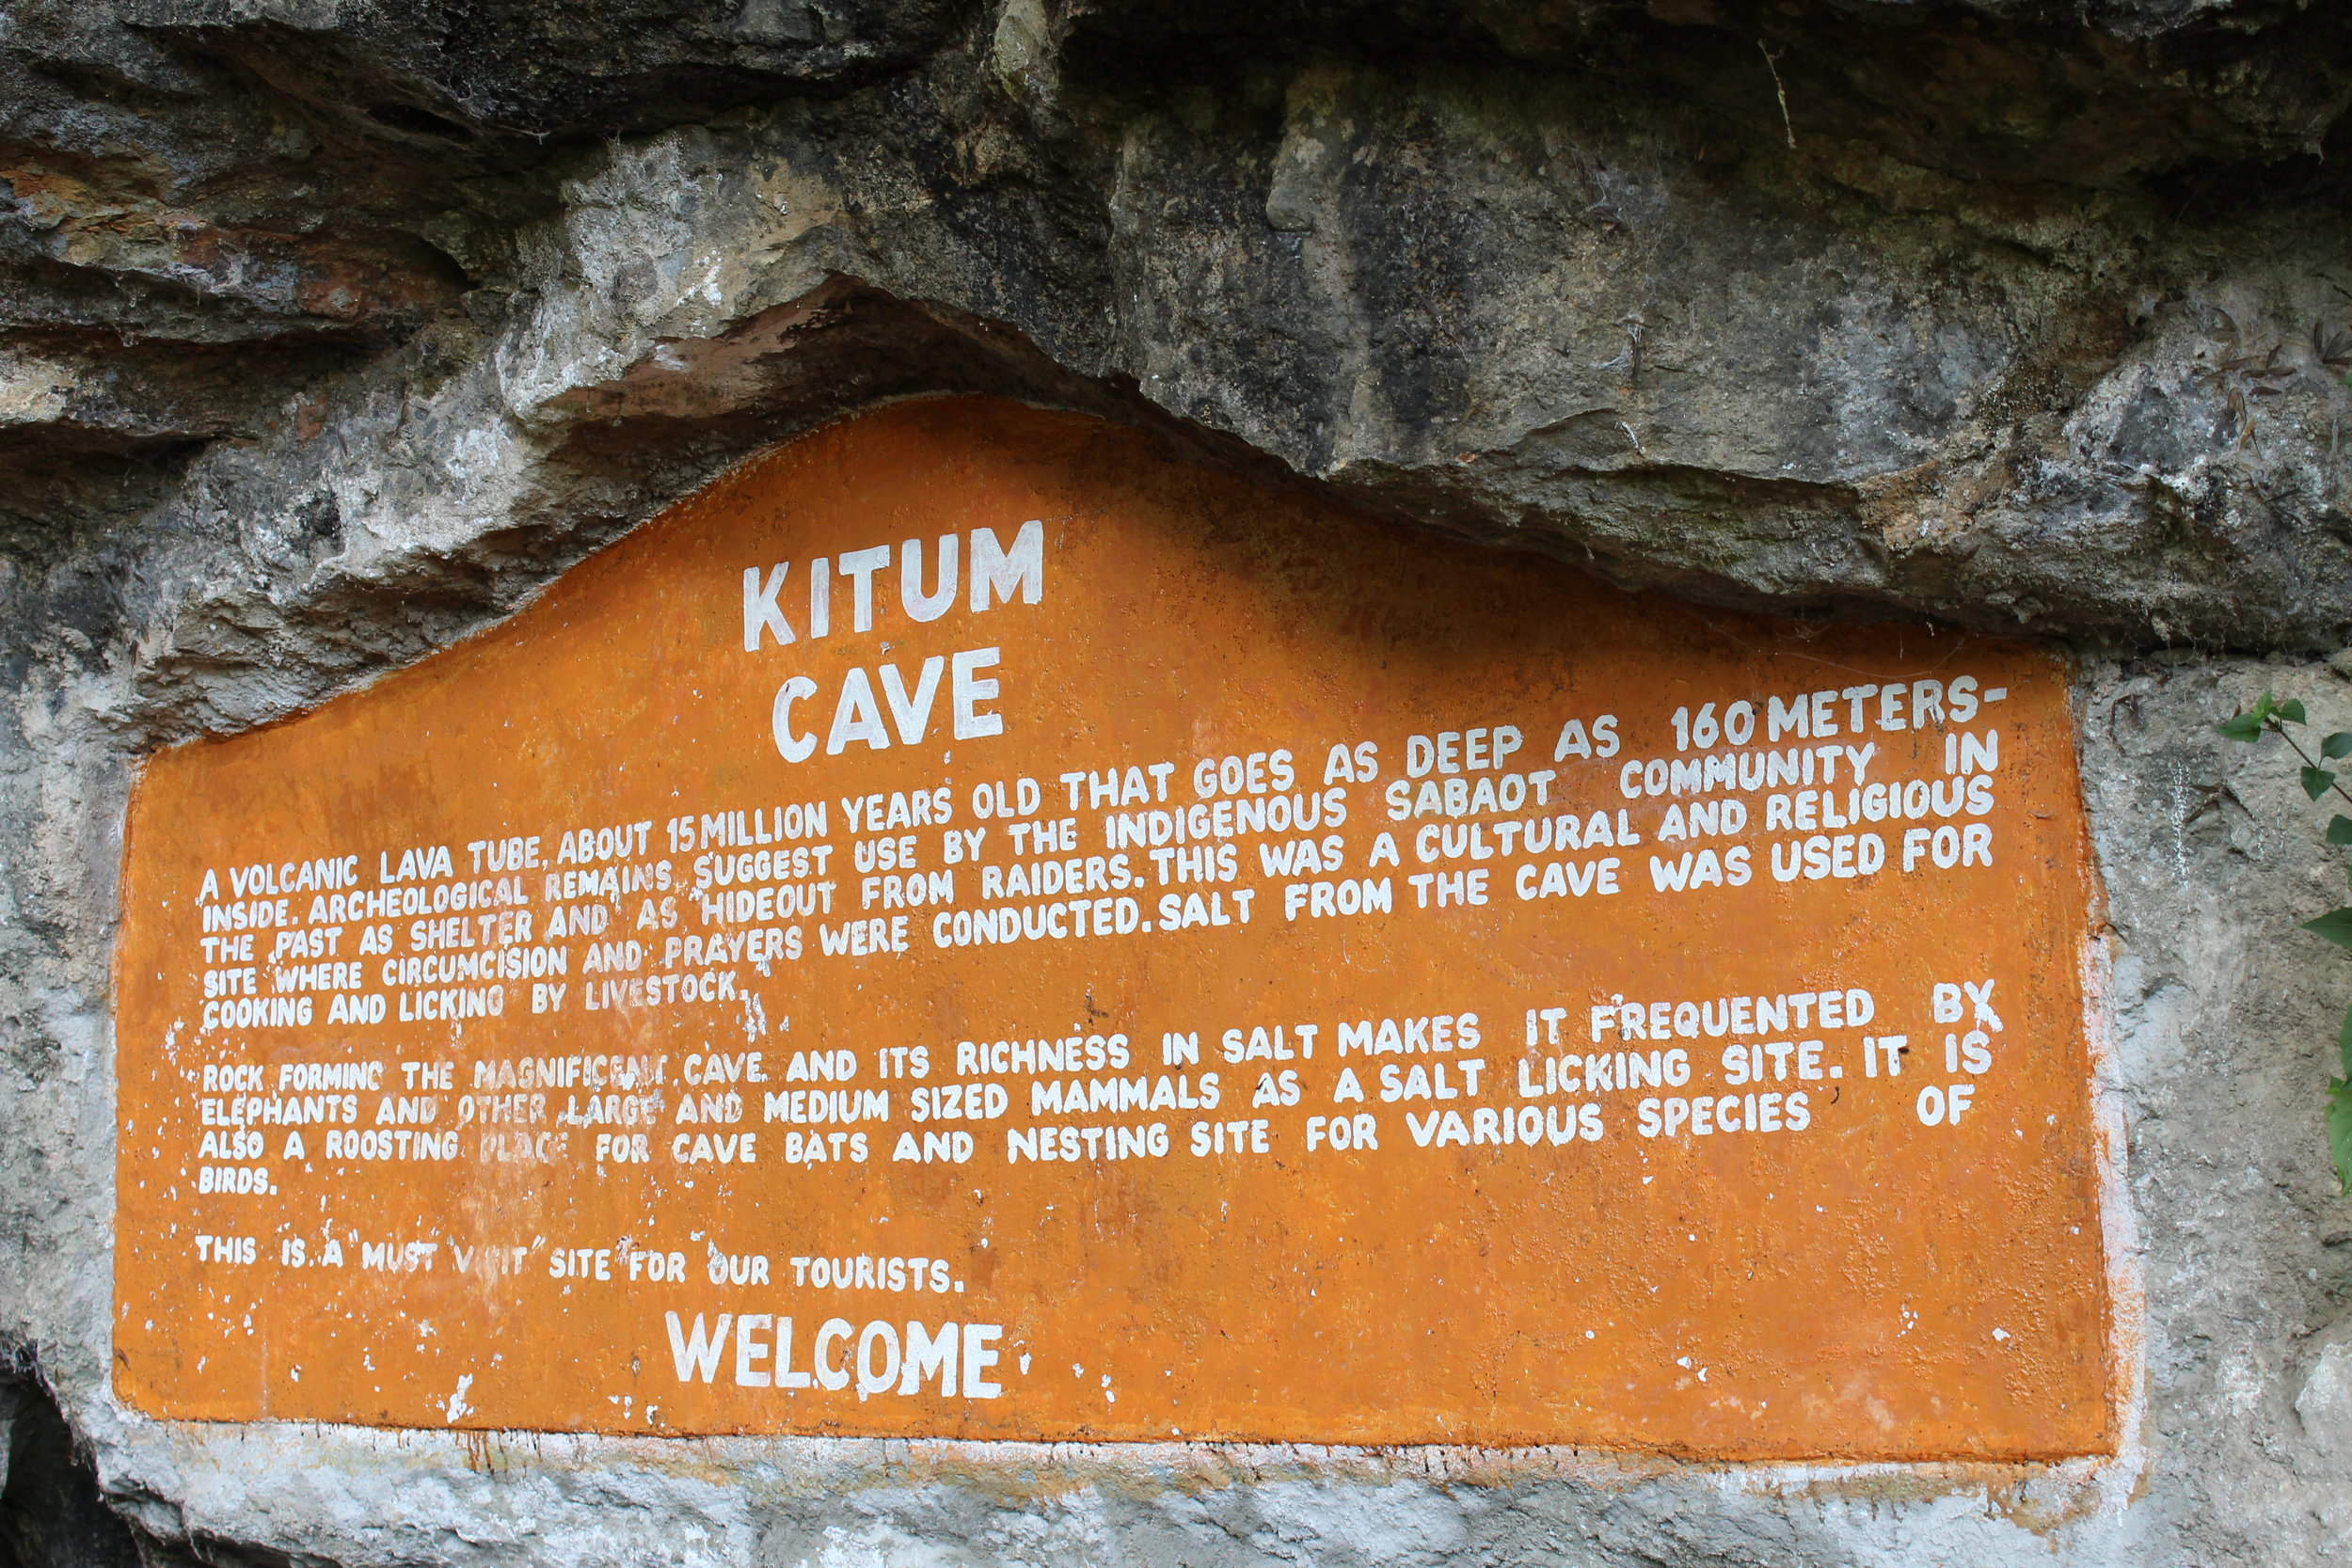 "Kitum Cave: ""A volcanic lava tube about 15 million years old that goes as deep as 160 Meters inside. Archaeological remains suggest use by the indigenous Sabot community in the past as shelter and as hideout from raiders. This was a cultural and religious site where circumcision and prayer were conducted. Salt from the Gave was used for cooking and licking by livestock. Rock forming the magnificent cave and its richness in salt makes it frequented by elephants and other large and medium sized mammals as a salt licking site. It is also a roosting place for cave bats and nesting site for various species of birds. This is a must visit site for our tourists. Welcome"""